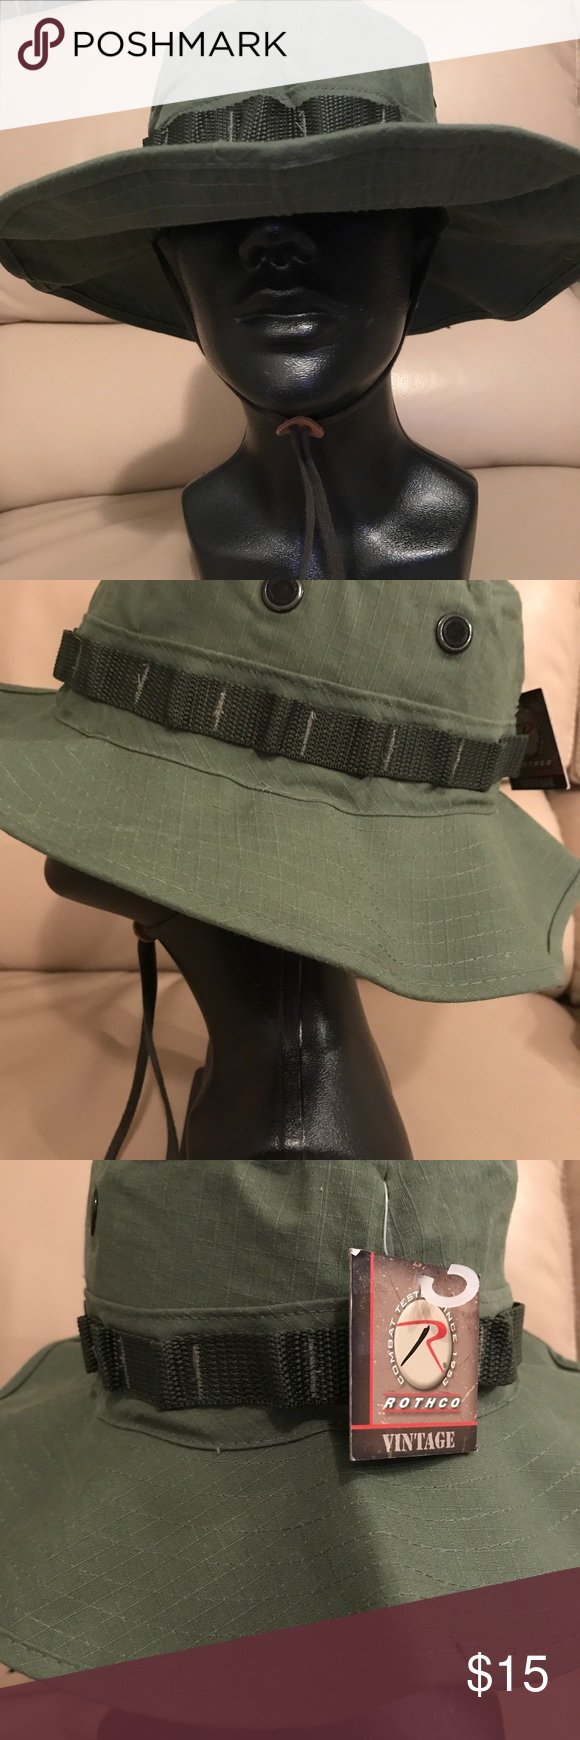 Military Hat Vintage Vietnam Style Boonie Hat in olive drab. Chin cord  strap. Size 7 1 4 f39ed141f32